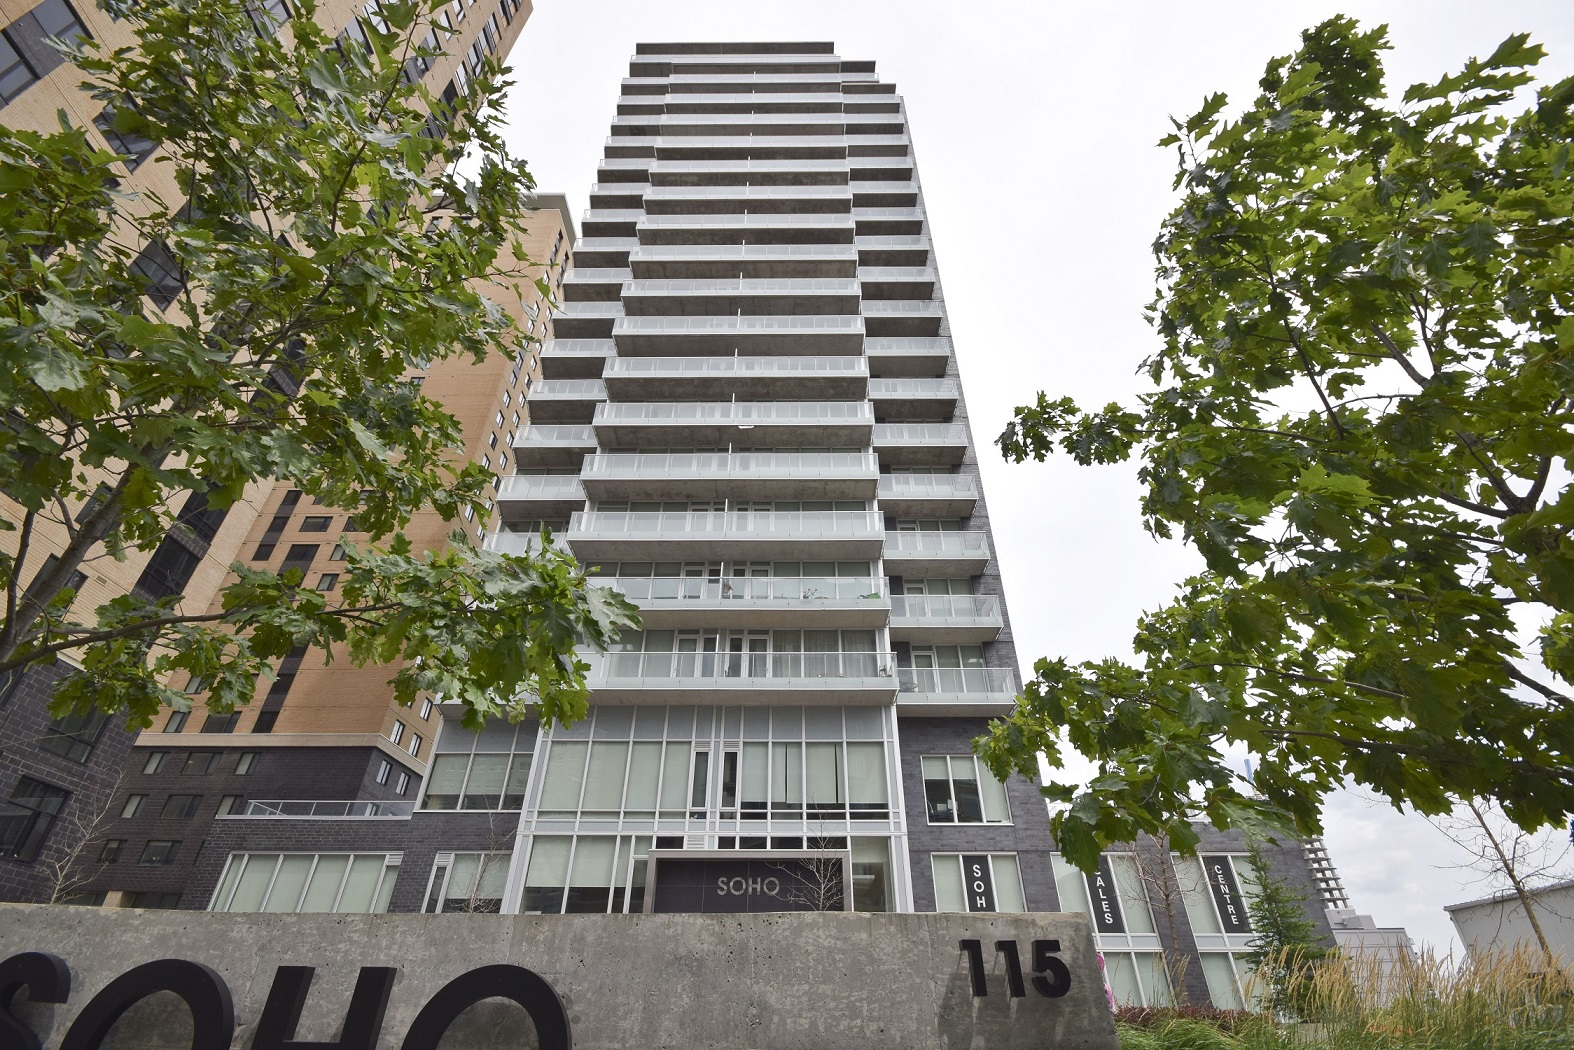 401-111 Champagne Ave S - Luxury at the Soho Champagne with Views of Dows Lake!